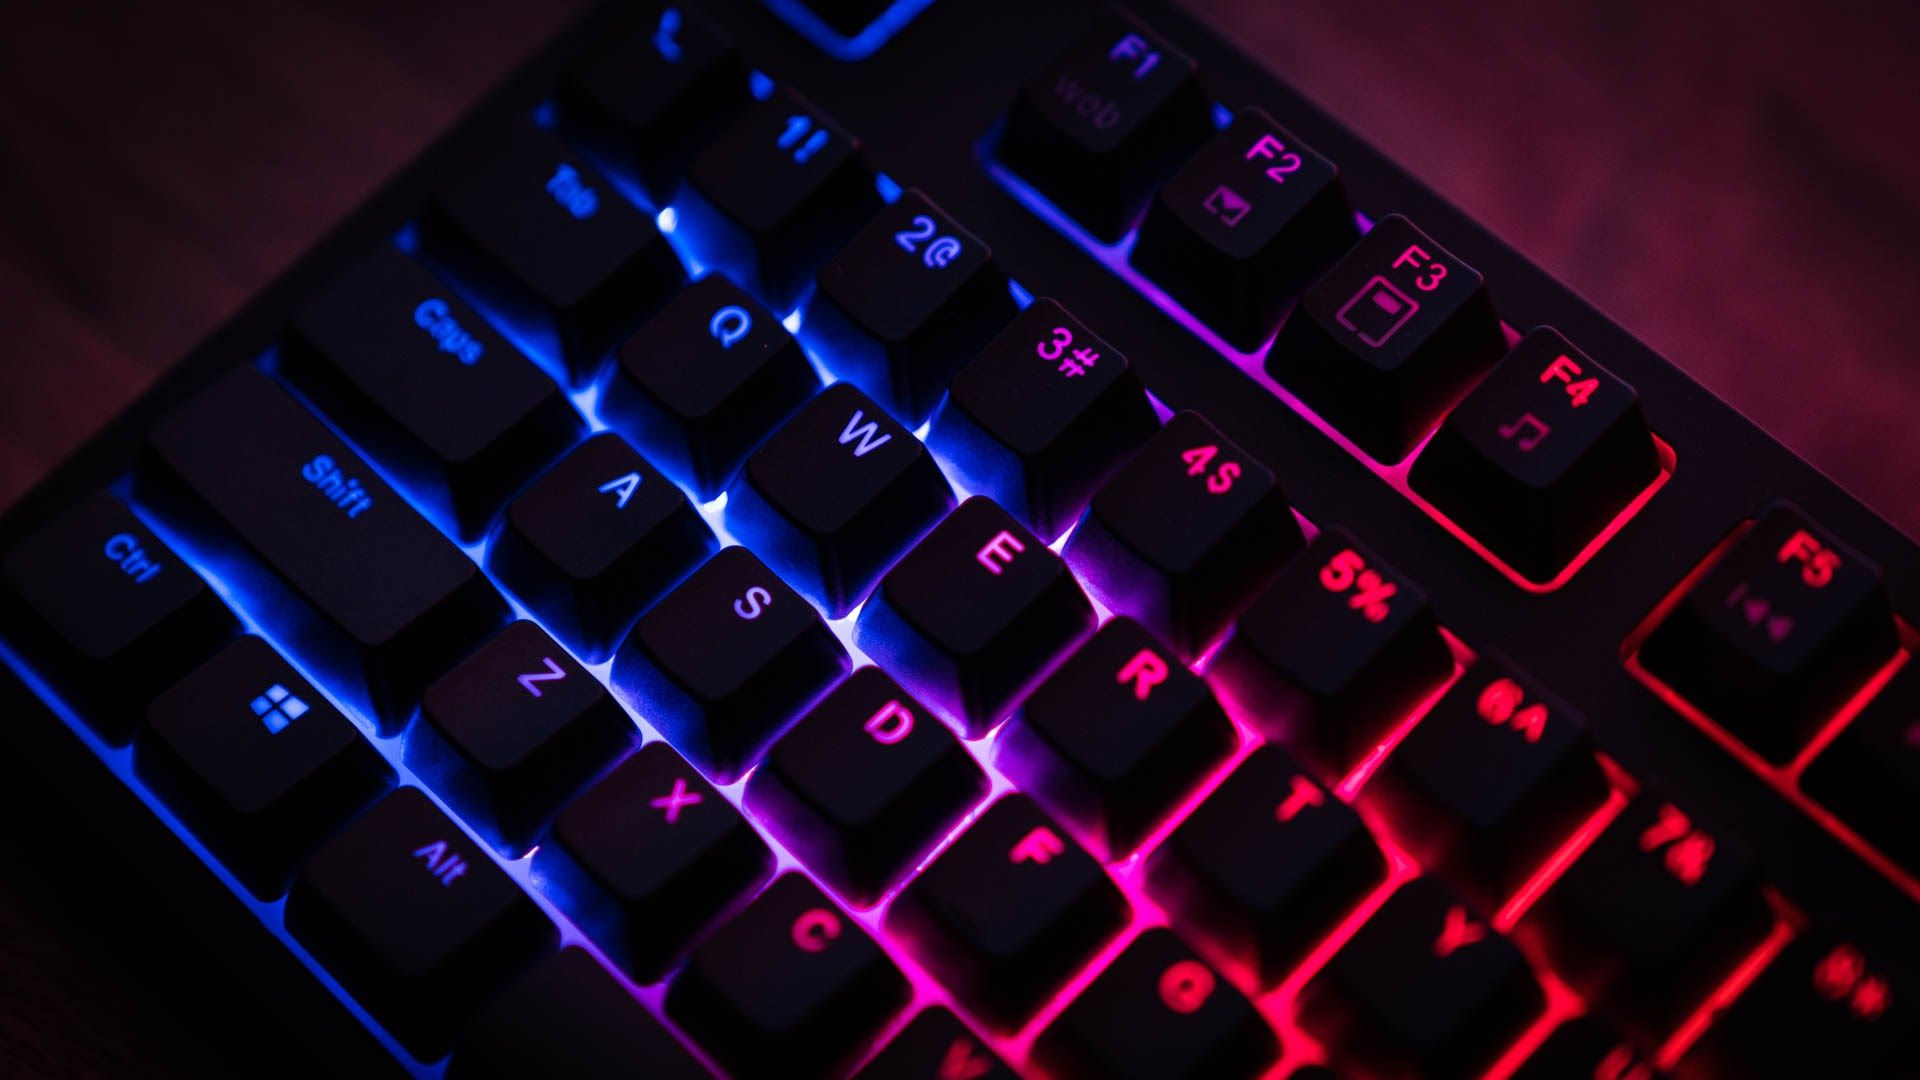 Rgb Pc Gaming Wallpapers Top Free Rgb Pc Gaming Backgrounds Wallpaperaccess